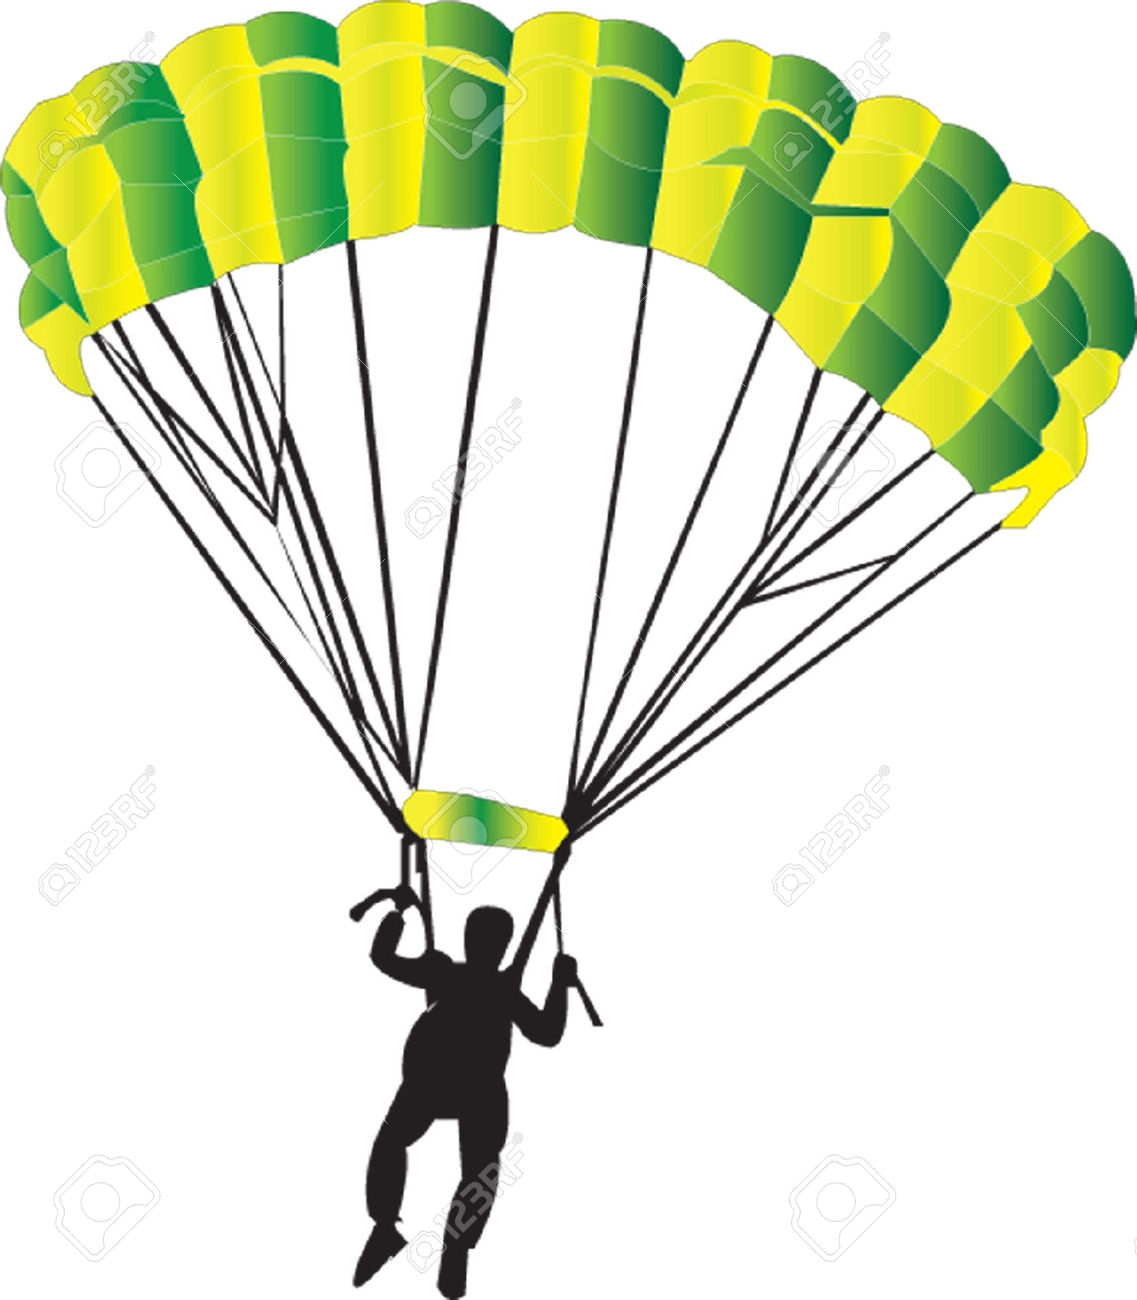 Parachute clipart. Best of gallery digital